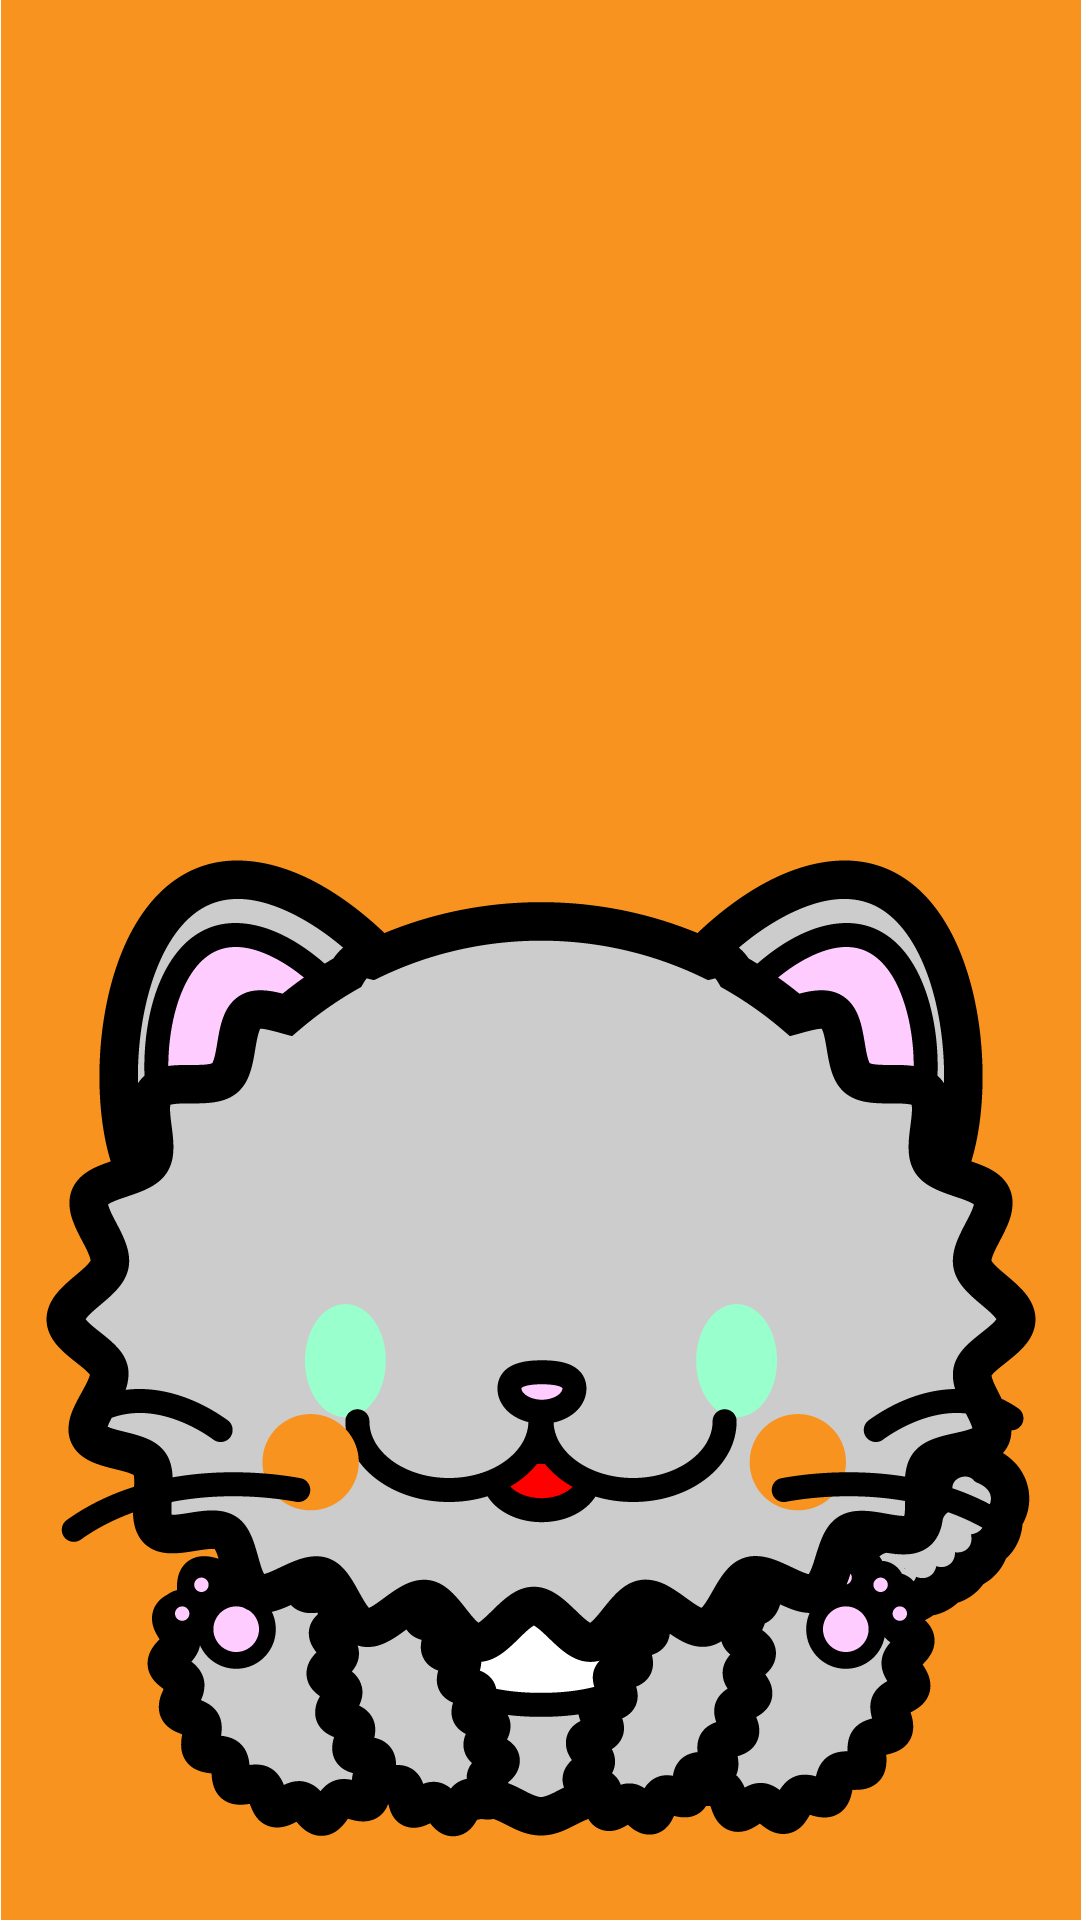 wallpaper4_sitpersiancat-orange-iphone